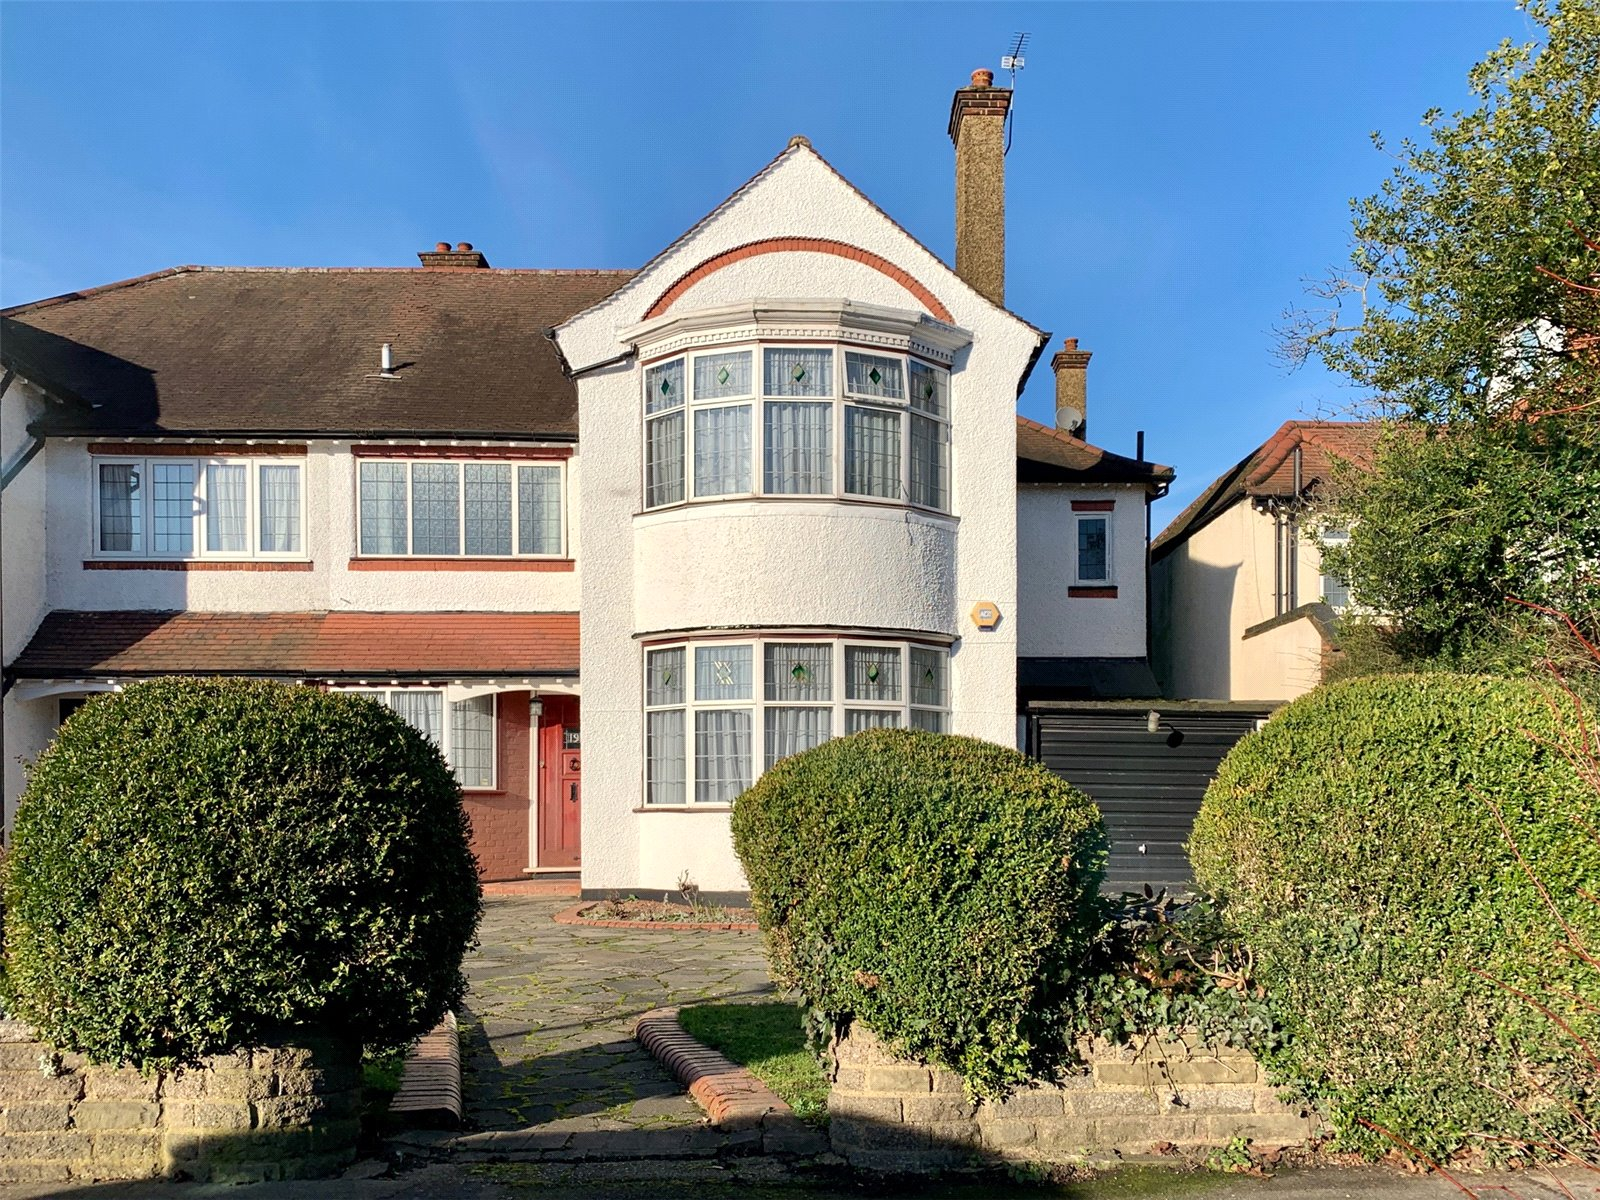 4 bed house for sale in Whetstone, N20 9ED 8